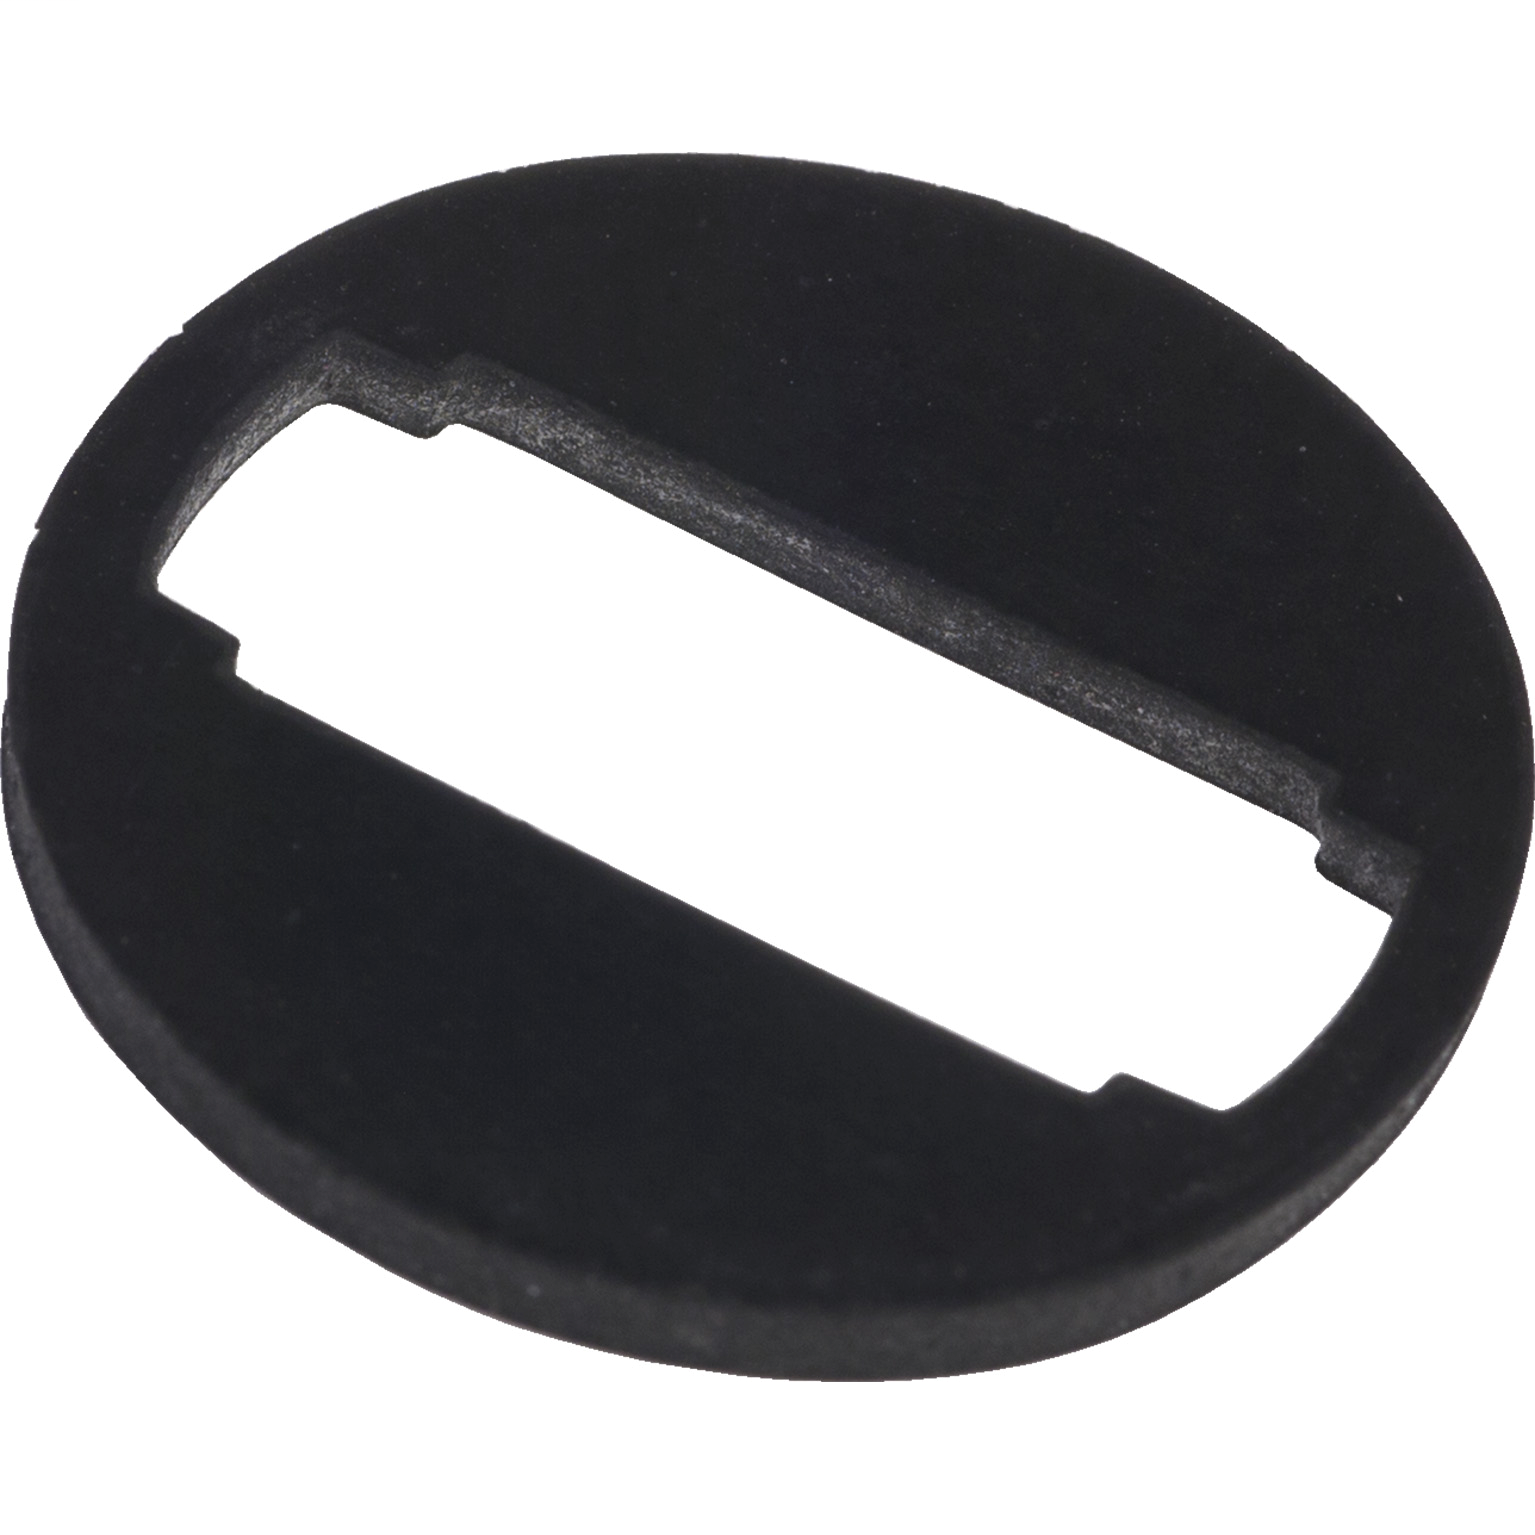 SQUARE D Gesket for plastic illuminated lens - 30 mm pushbutton